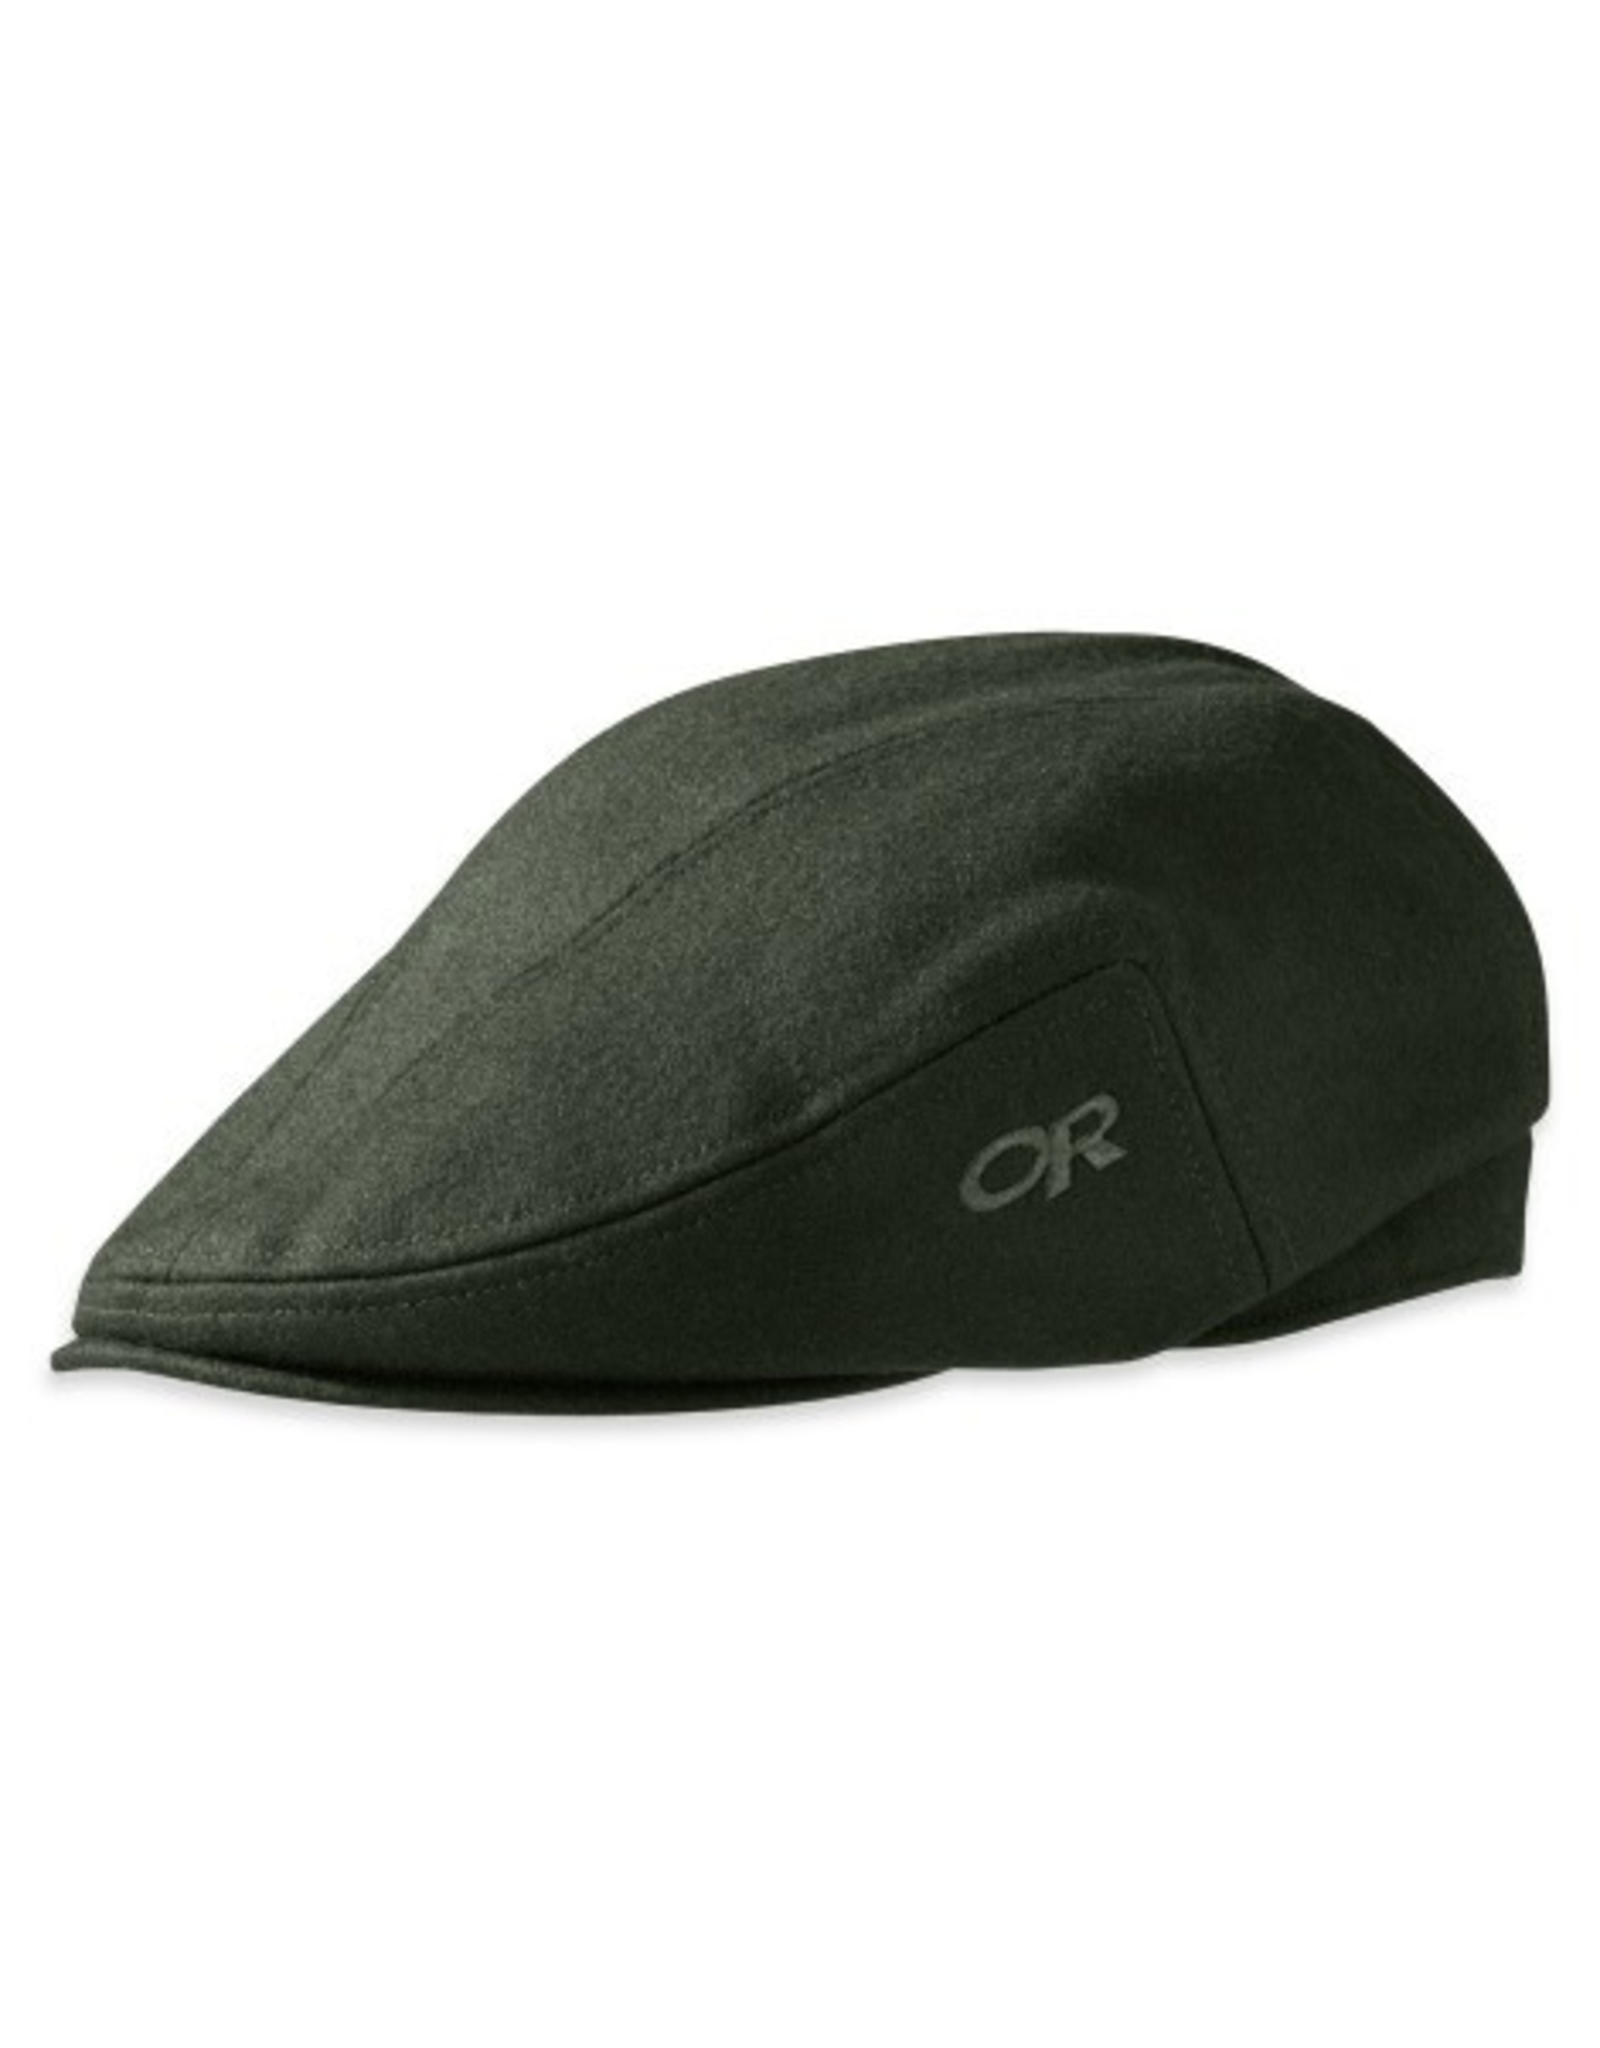 Outdoor Research OR Turnpoint Driver Cap